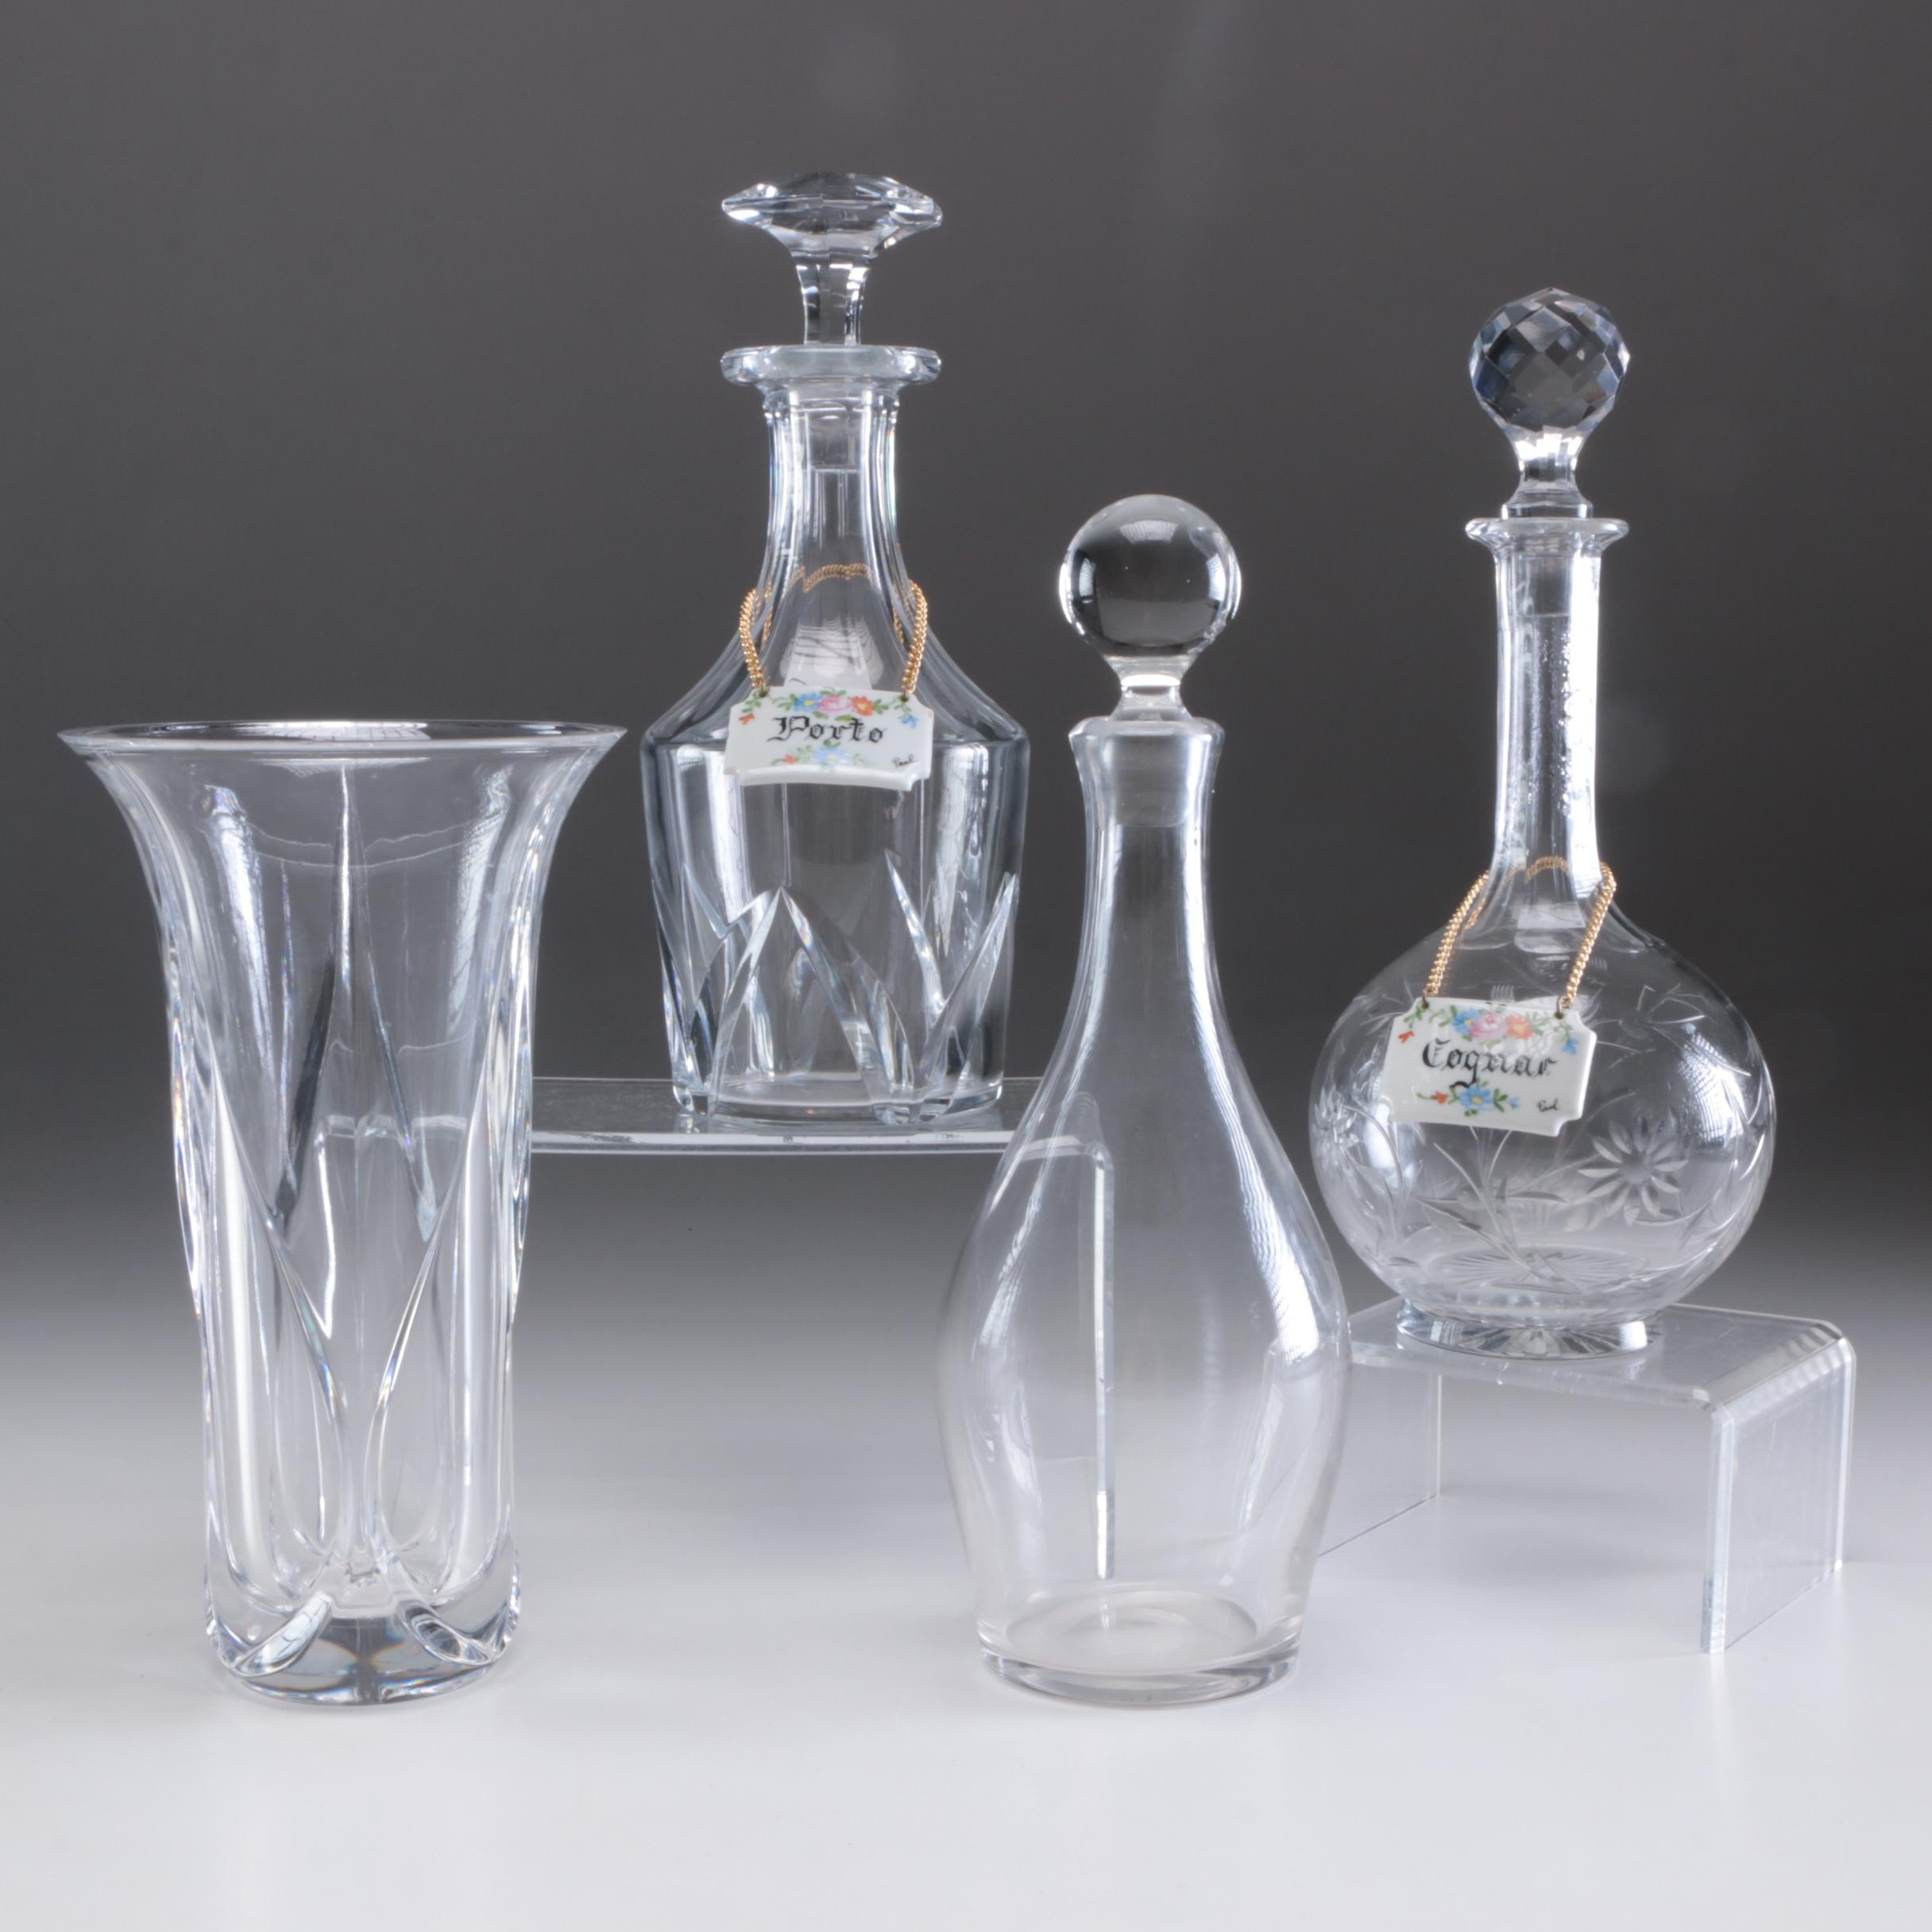 Baccarat Crystal Decanter, Glass Decanters and Nachtmann Crystal Vase